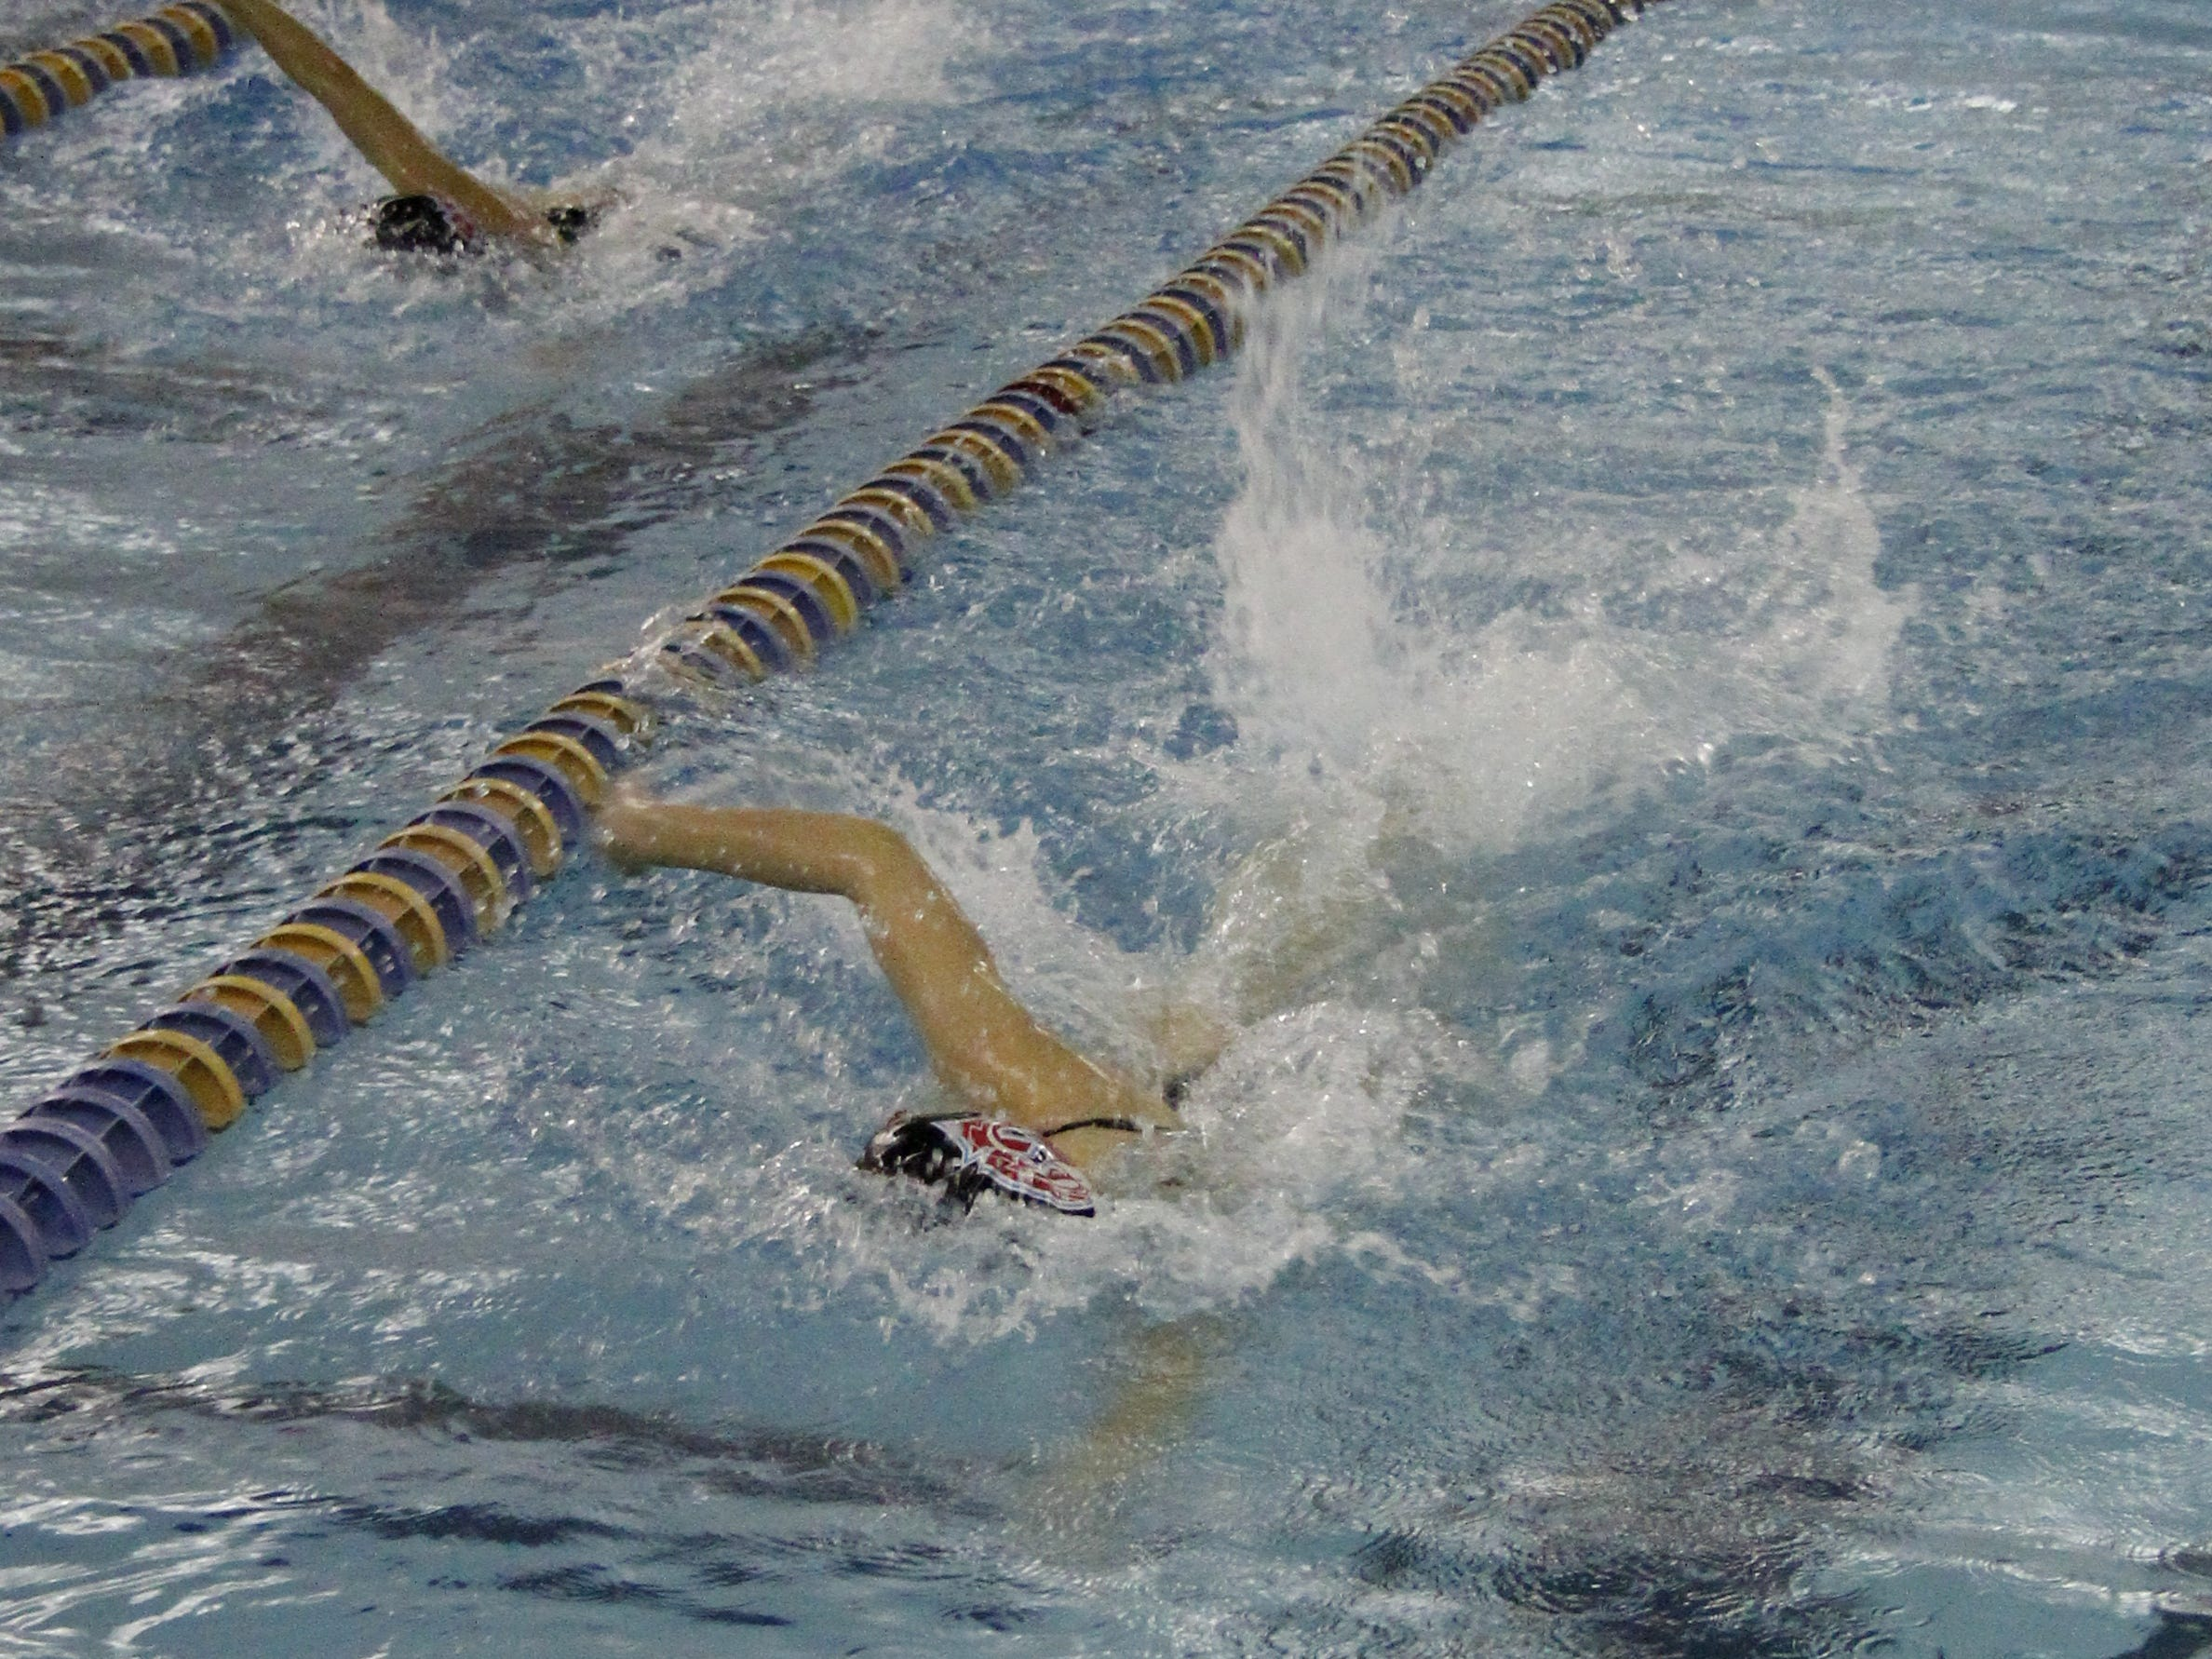 10 Excuses Only a Swimmer Could Use to Get Out of Practice